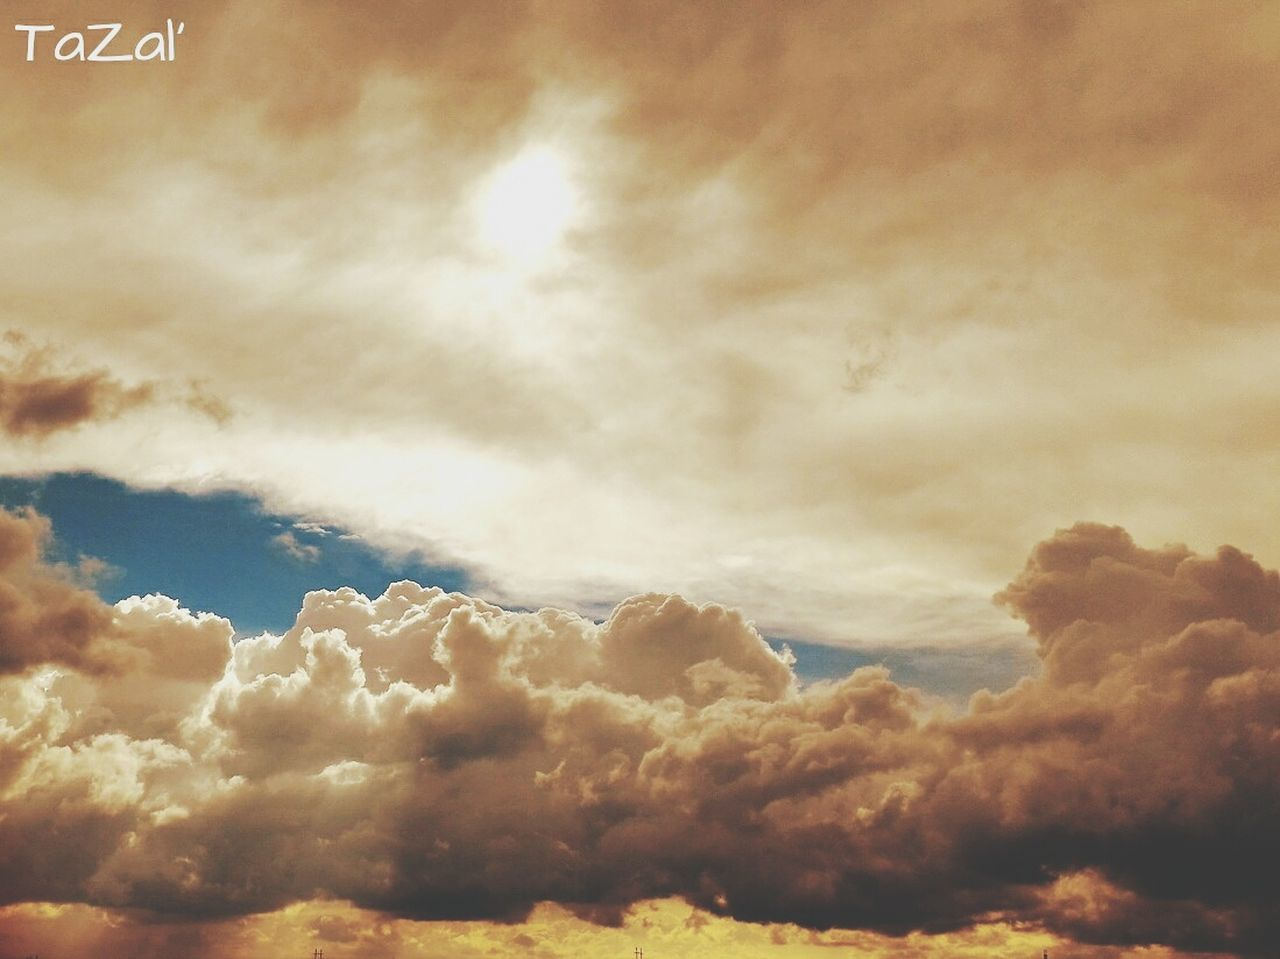 sky, beauty in nature, nature, cloud - sky, cloudscape, majestic, scenics, tranquility, sky only, heaven, no people, outdoors, low angle view, backgrounds, day